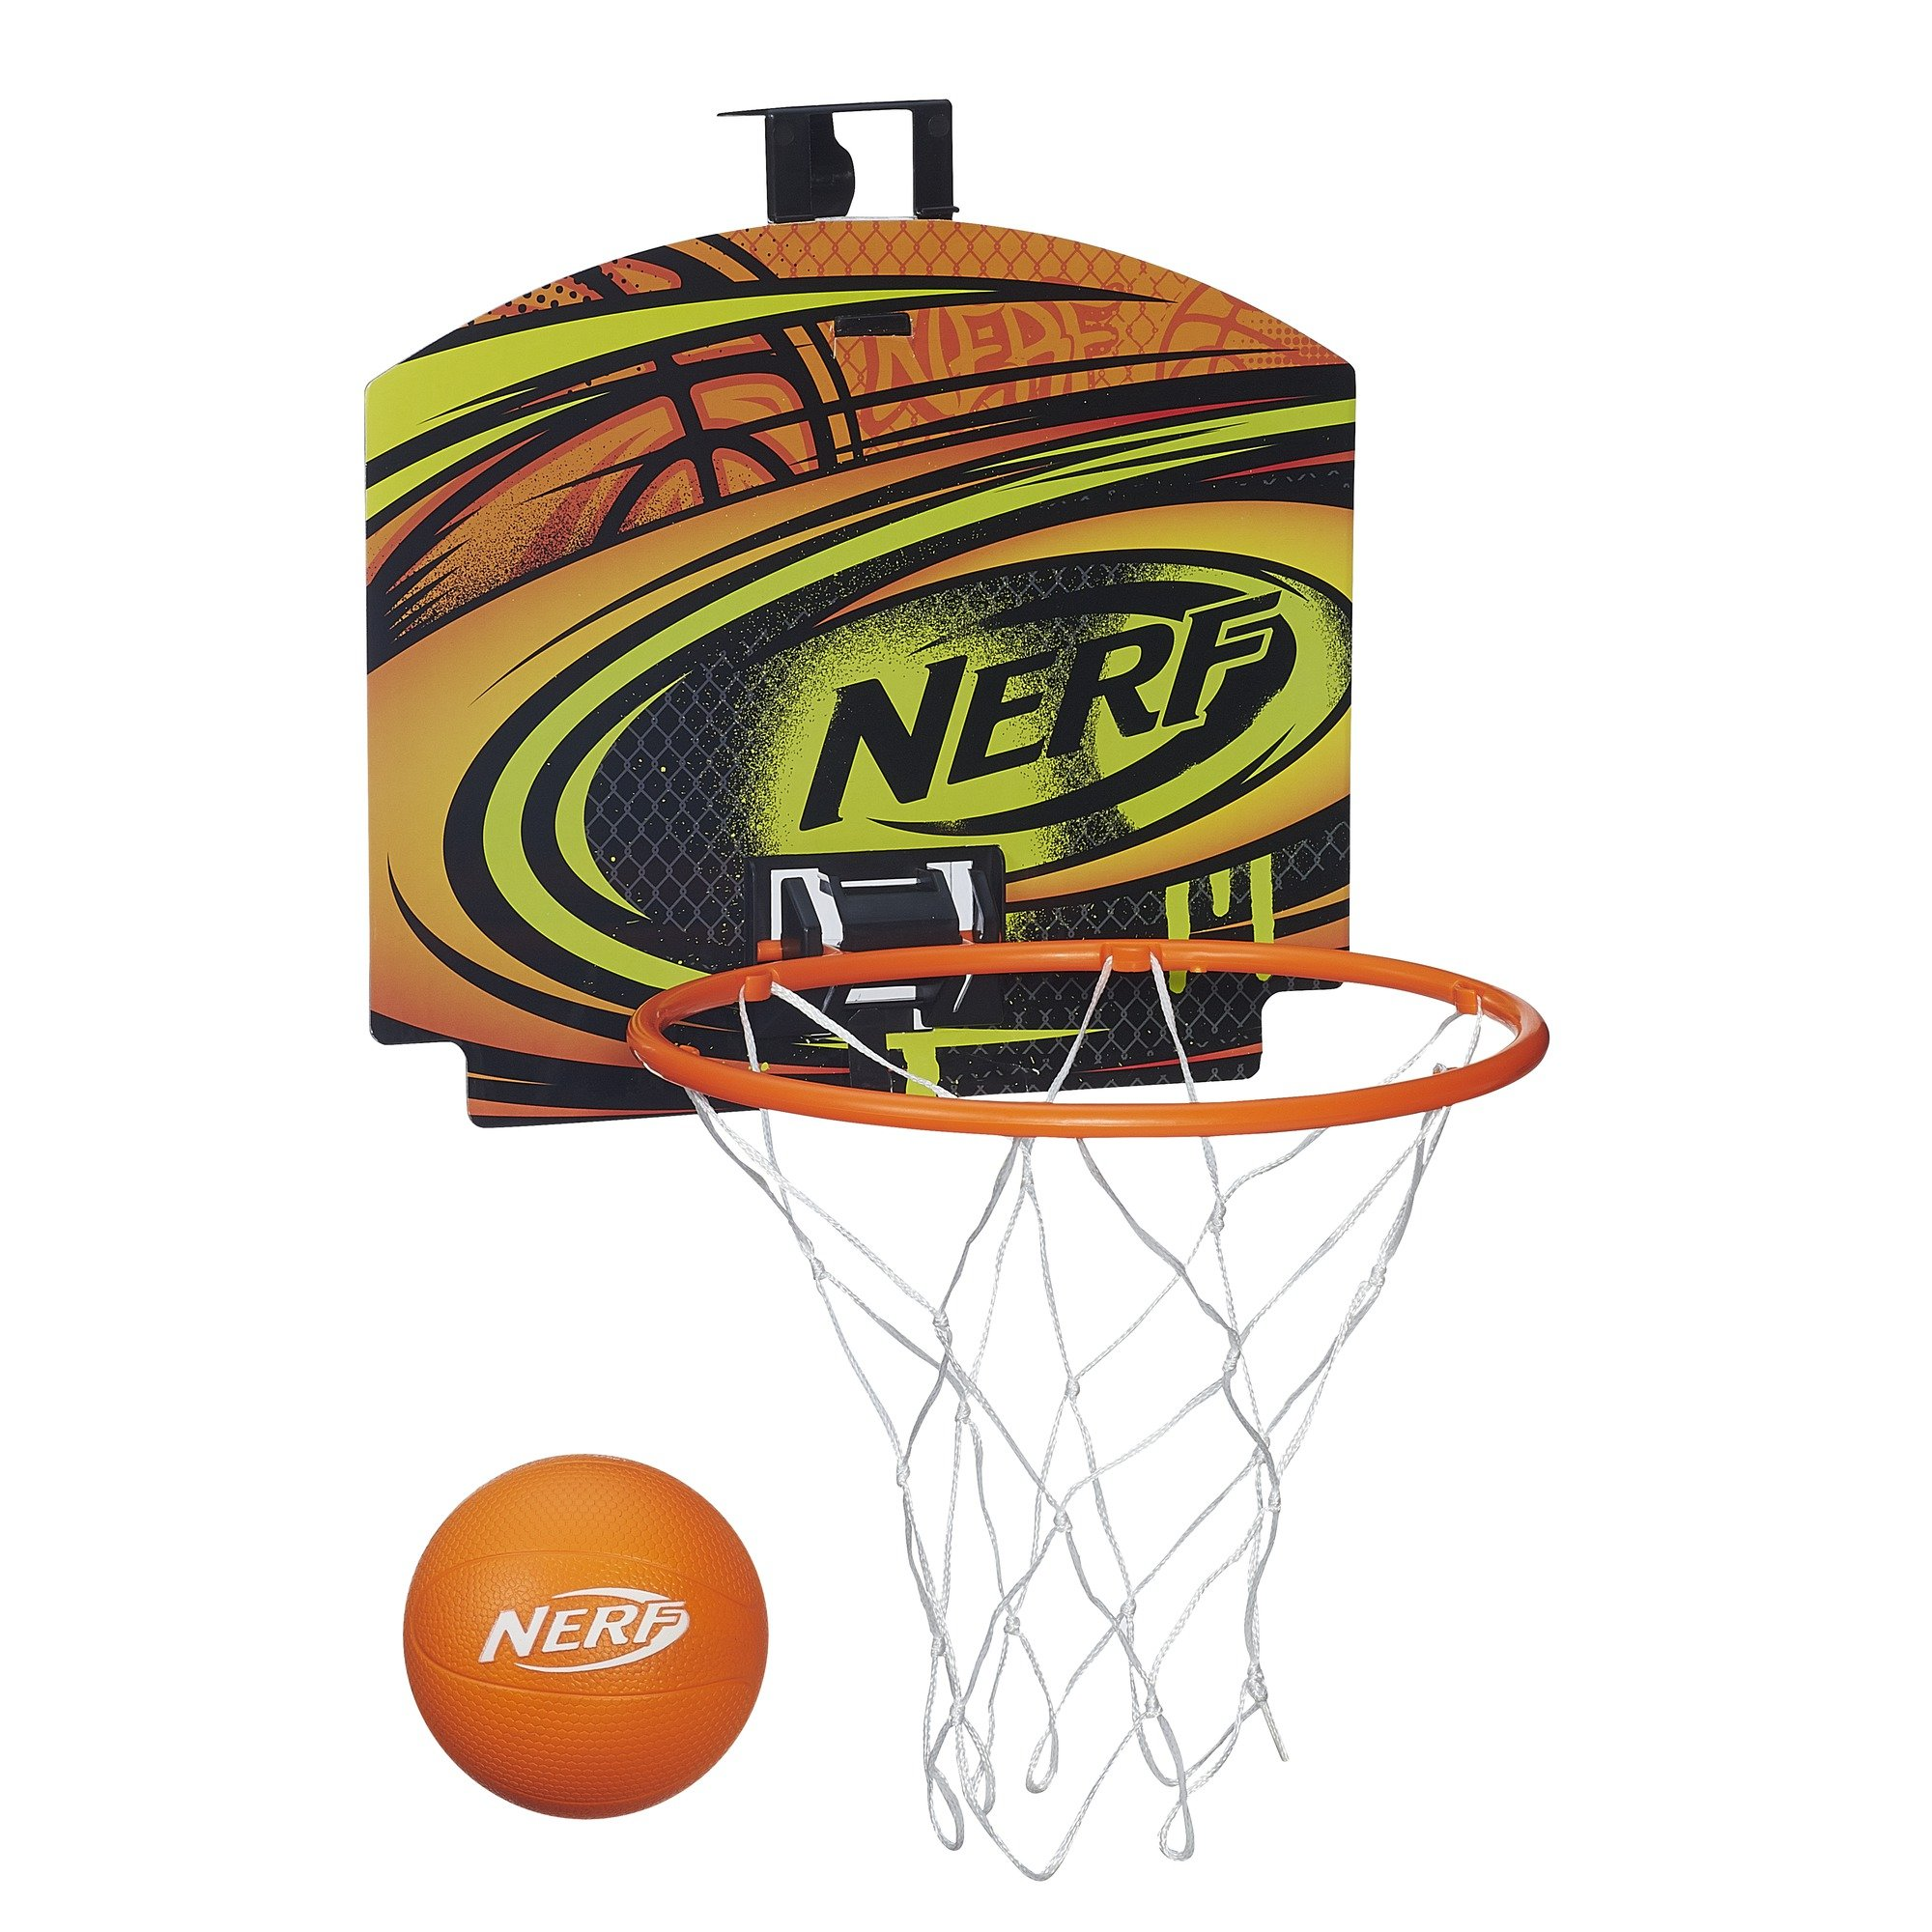 NERF Sports Nerfoop Set Toy, Orange by NERF